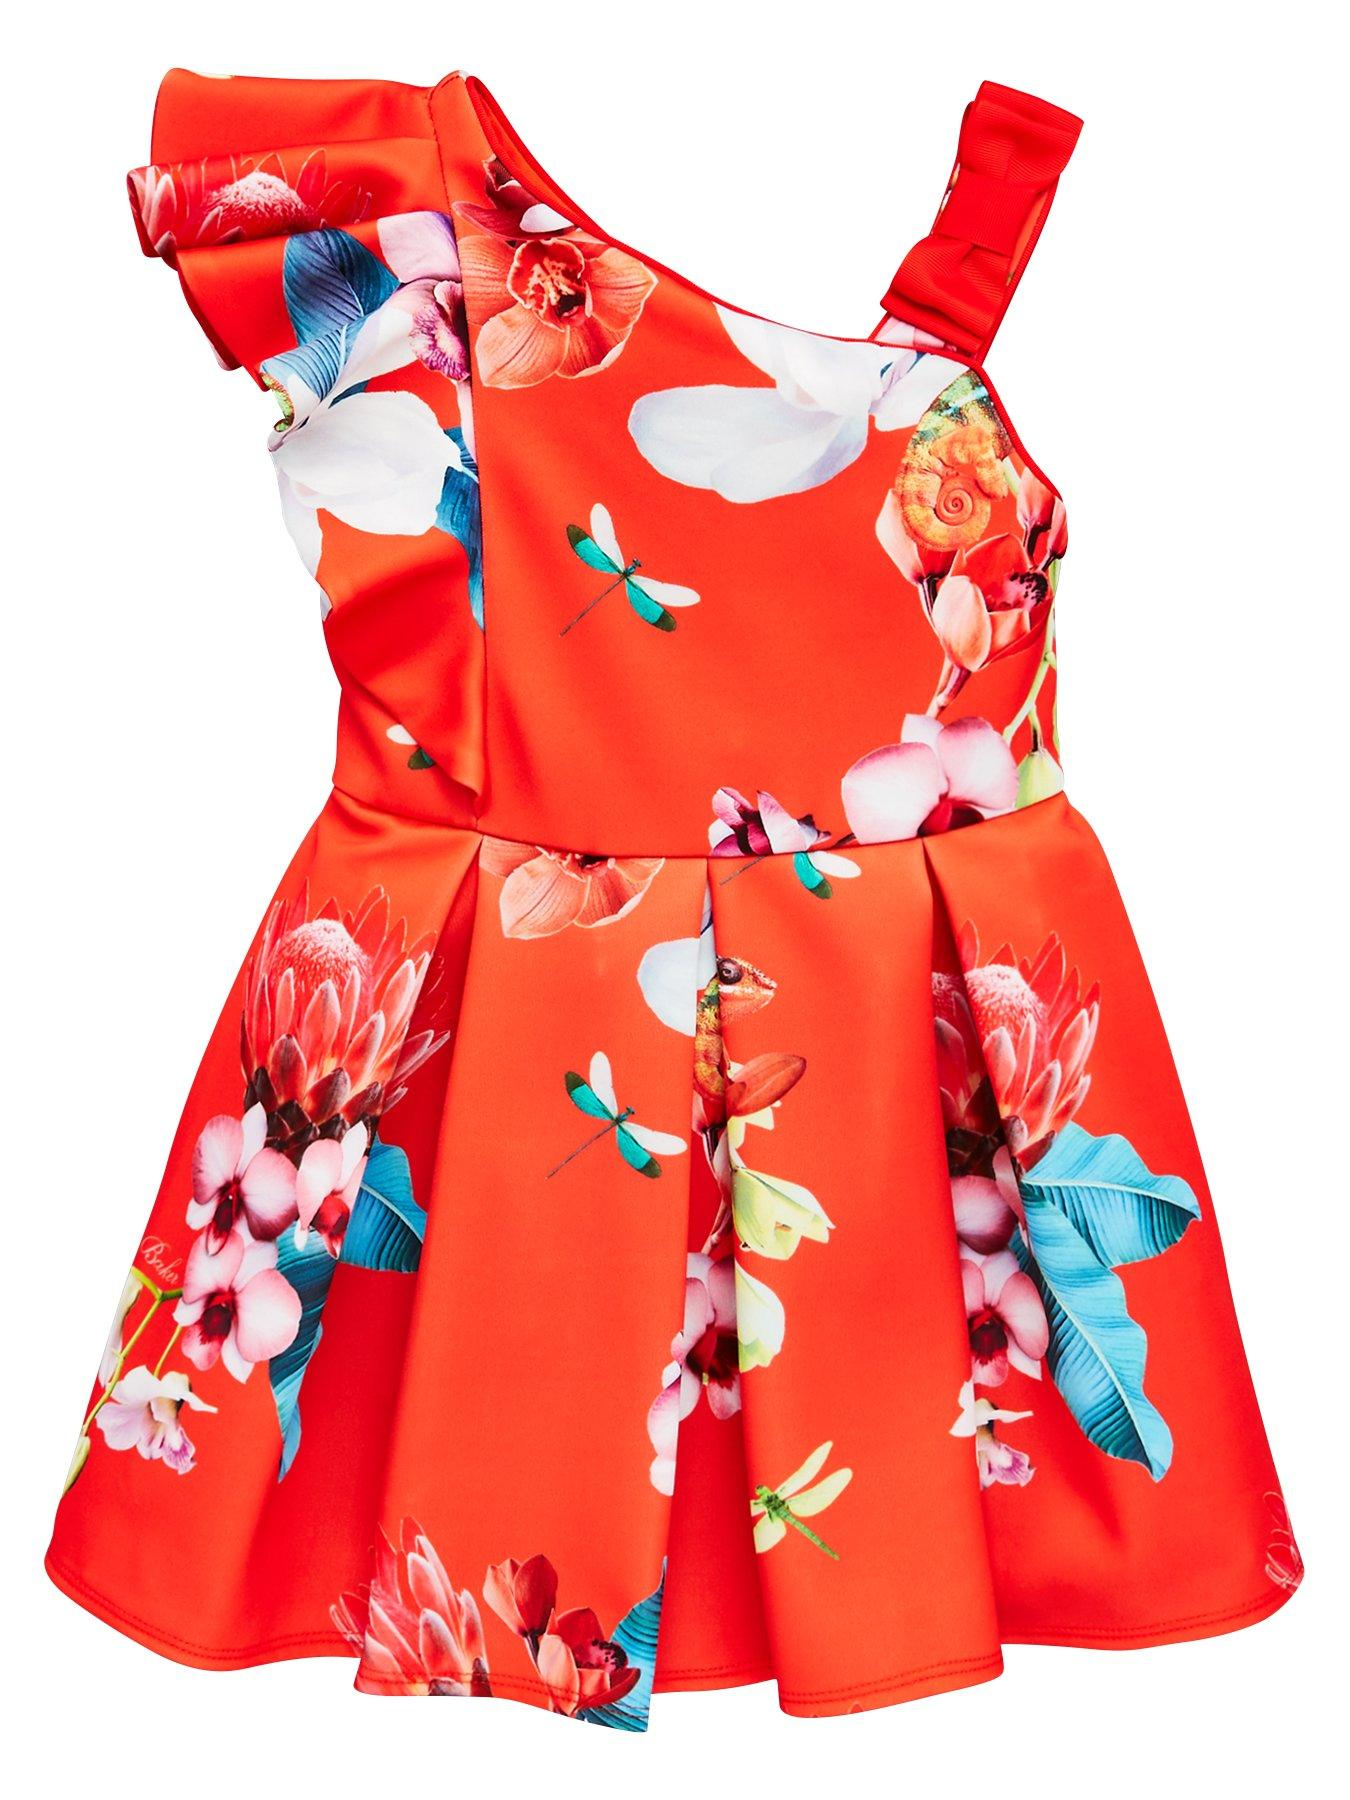 Girls' Clothing (2-16 Years) Dresses Ted Baker Girls Blue Dress Worn Once Age 12-13